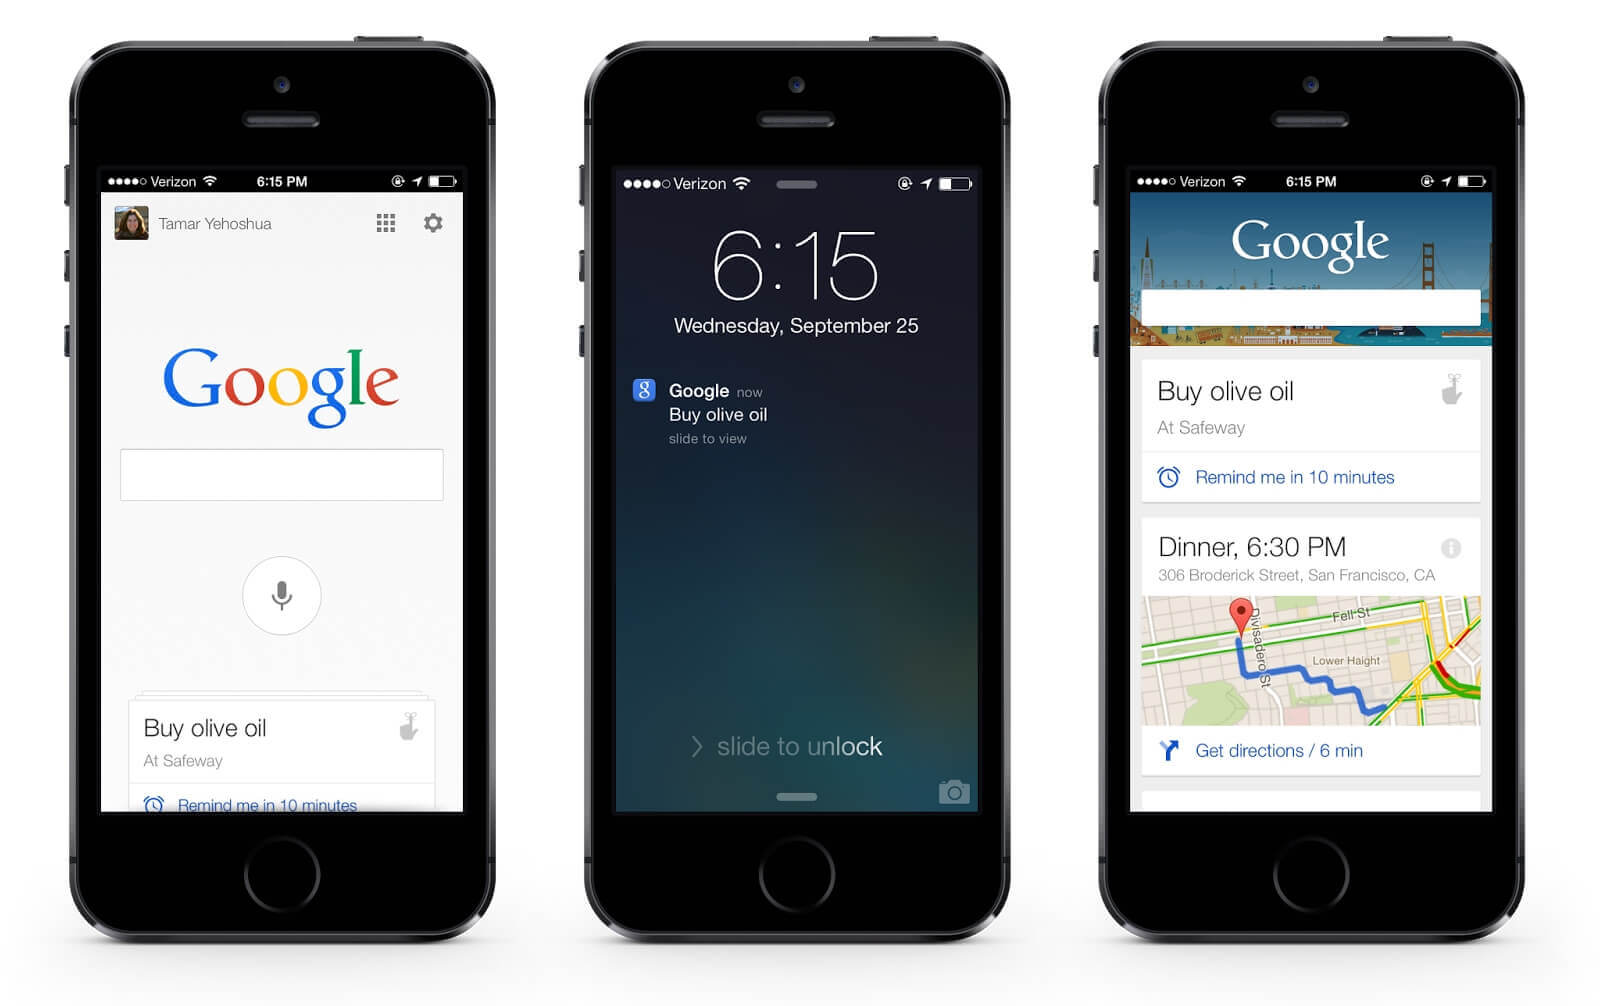 Google Search in Apple iPhone